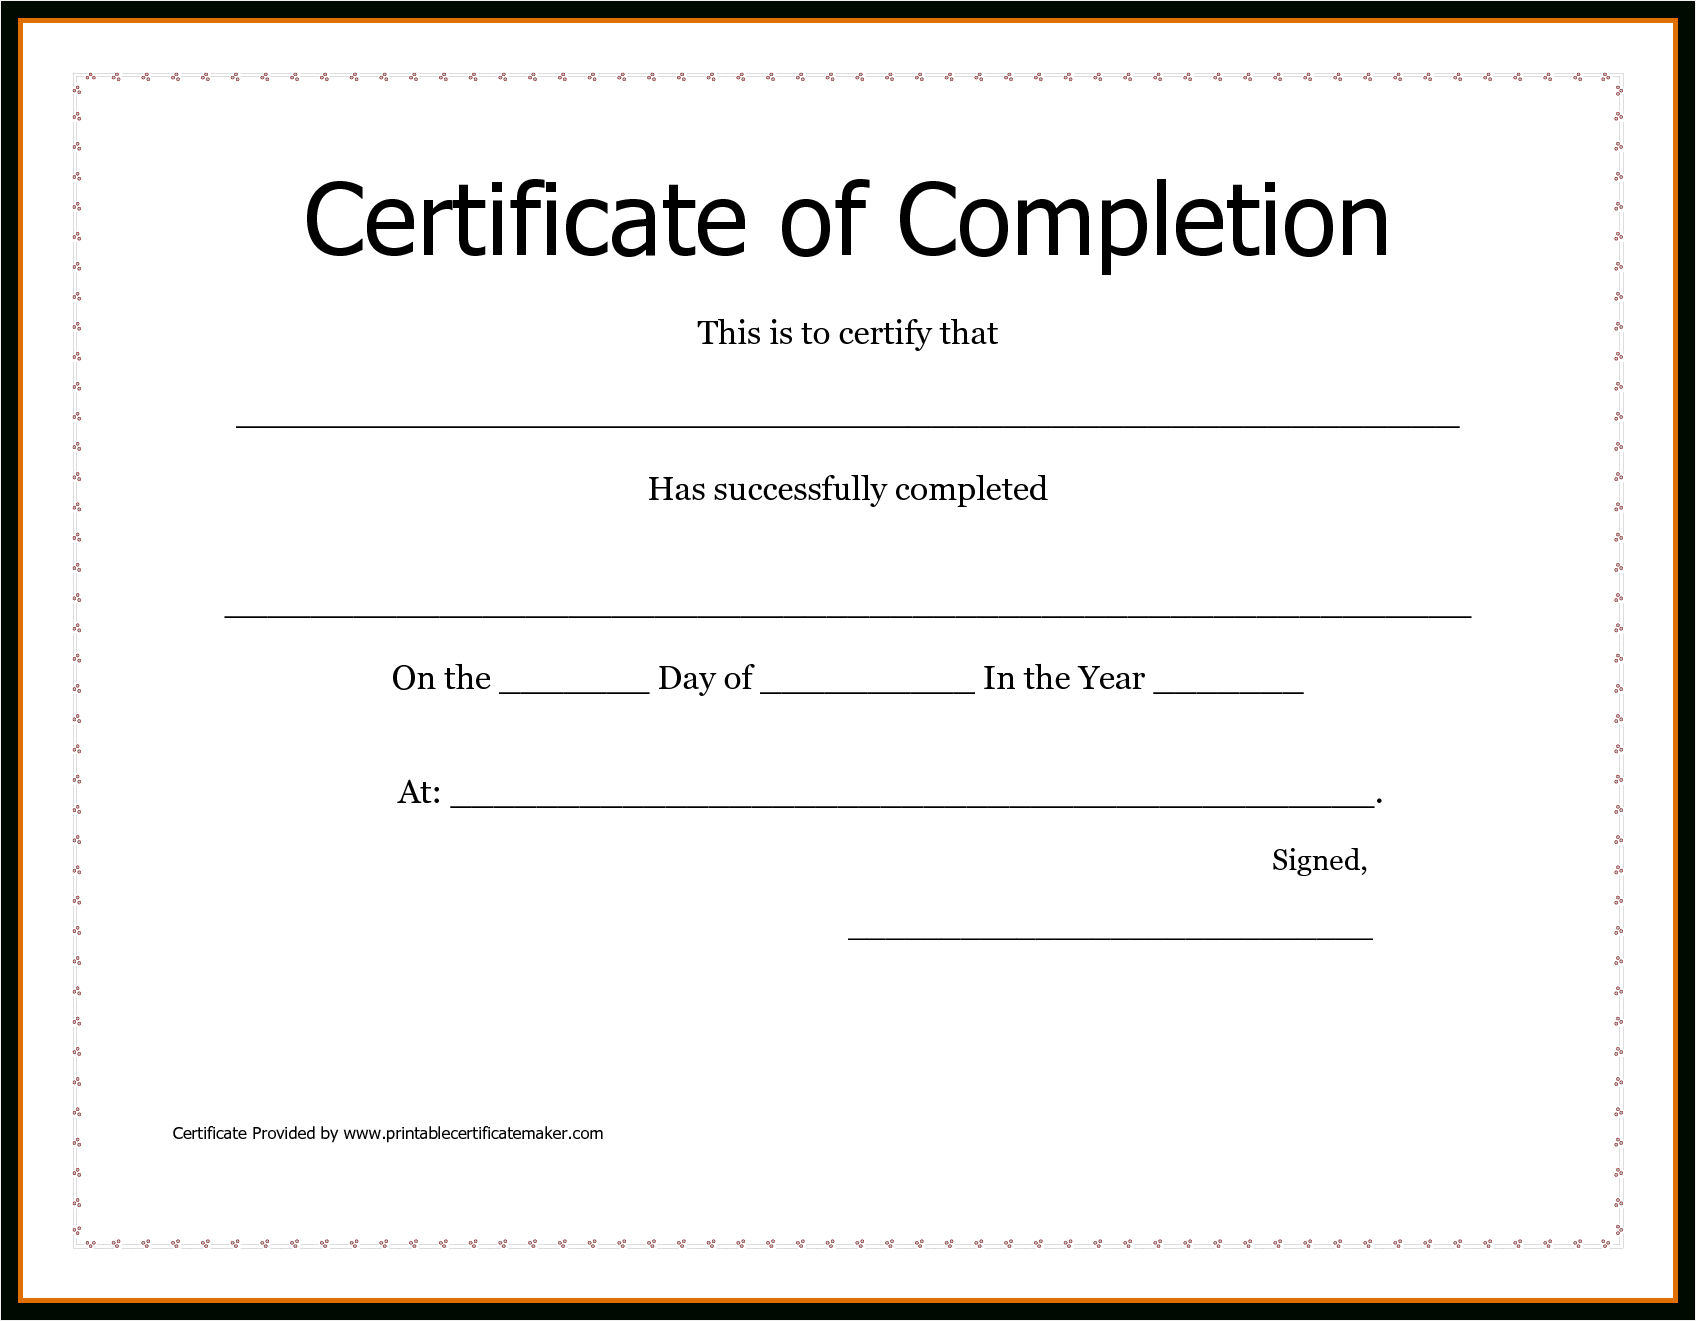 Free Printable Certificate Of Achievement Word Template Letter - Certificate Of Completion Template Free Printable